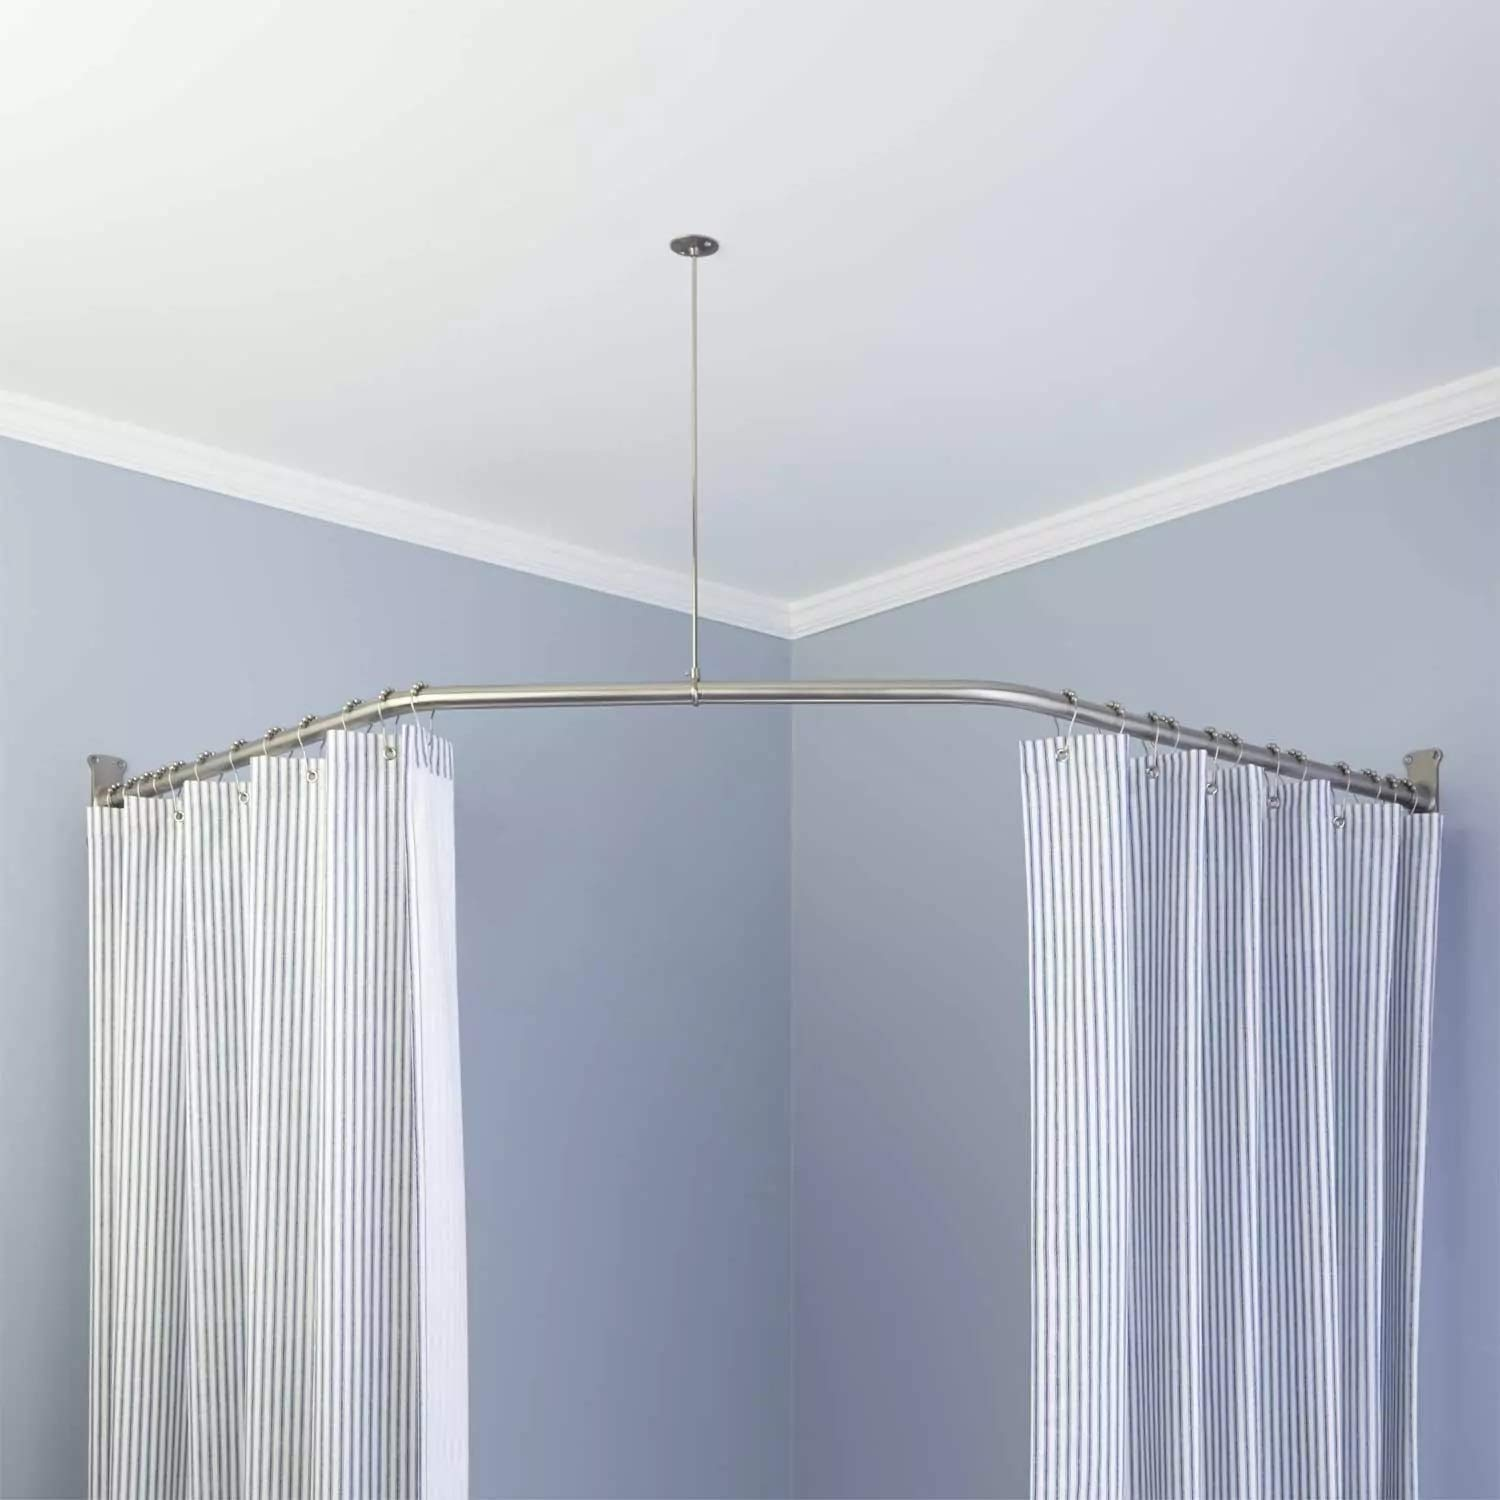 Naiture Stainless Steel 18-1/2'' X 26'' X 18-1/2'' Neo-Angle Shower Curtain Rod with Ceiling Support, Brushed Nickel Finish